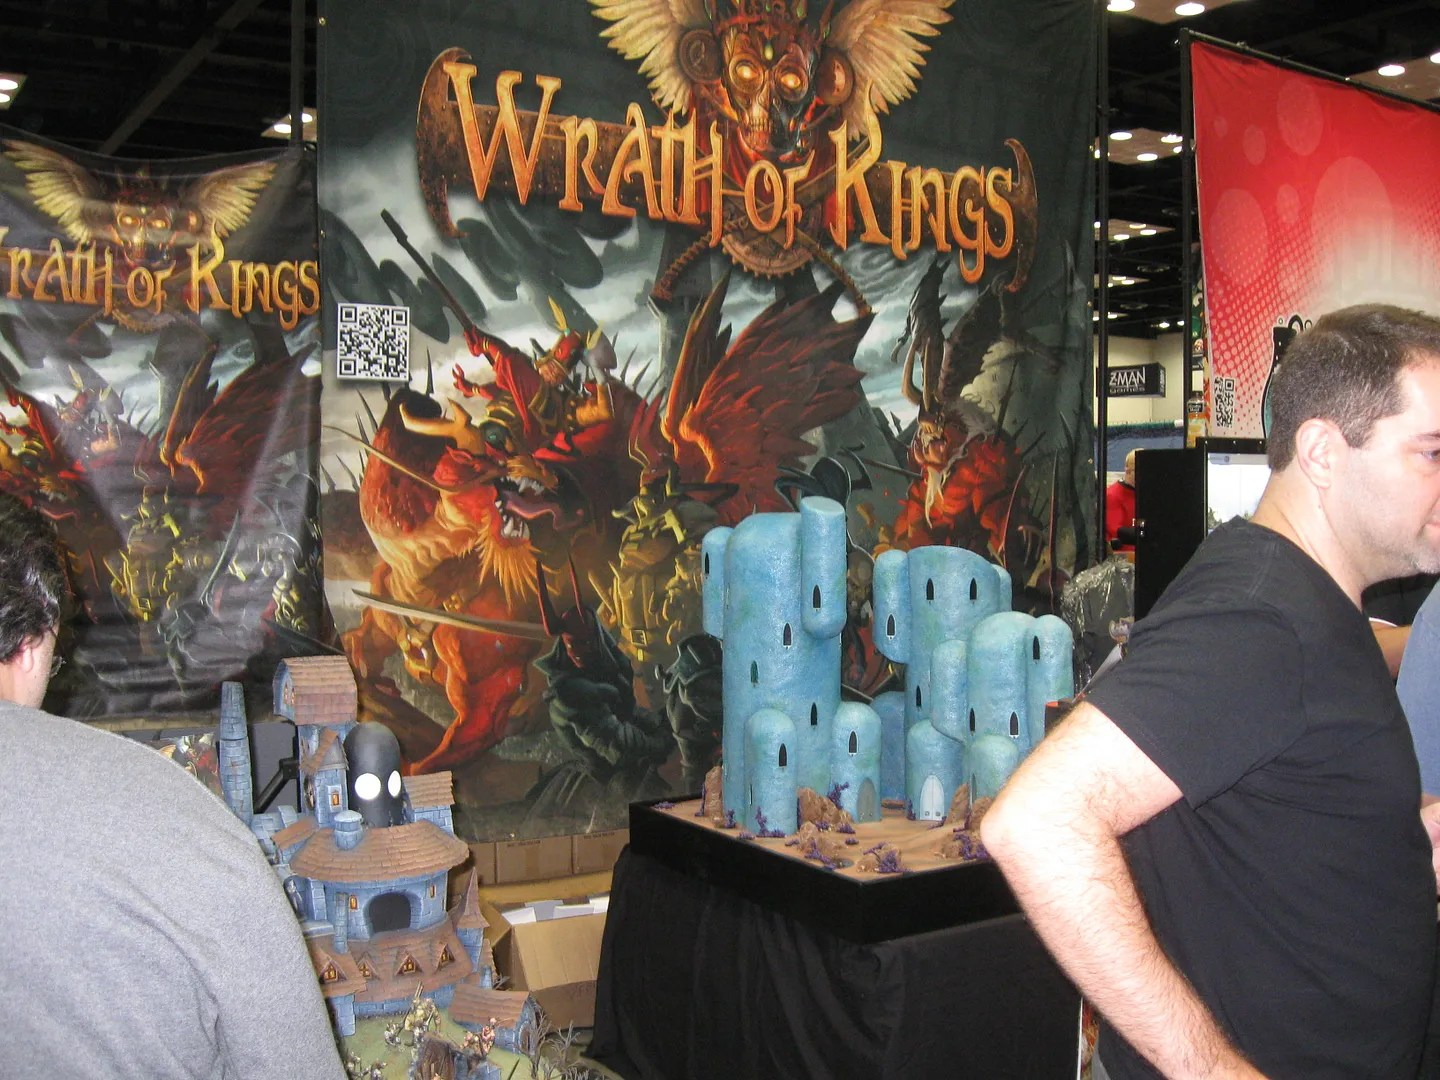 Wrath of Kings, GenCon 2013